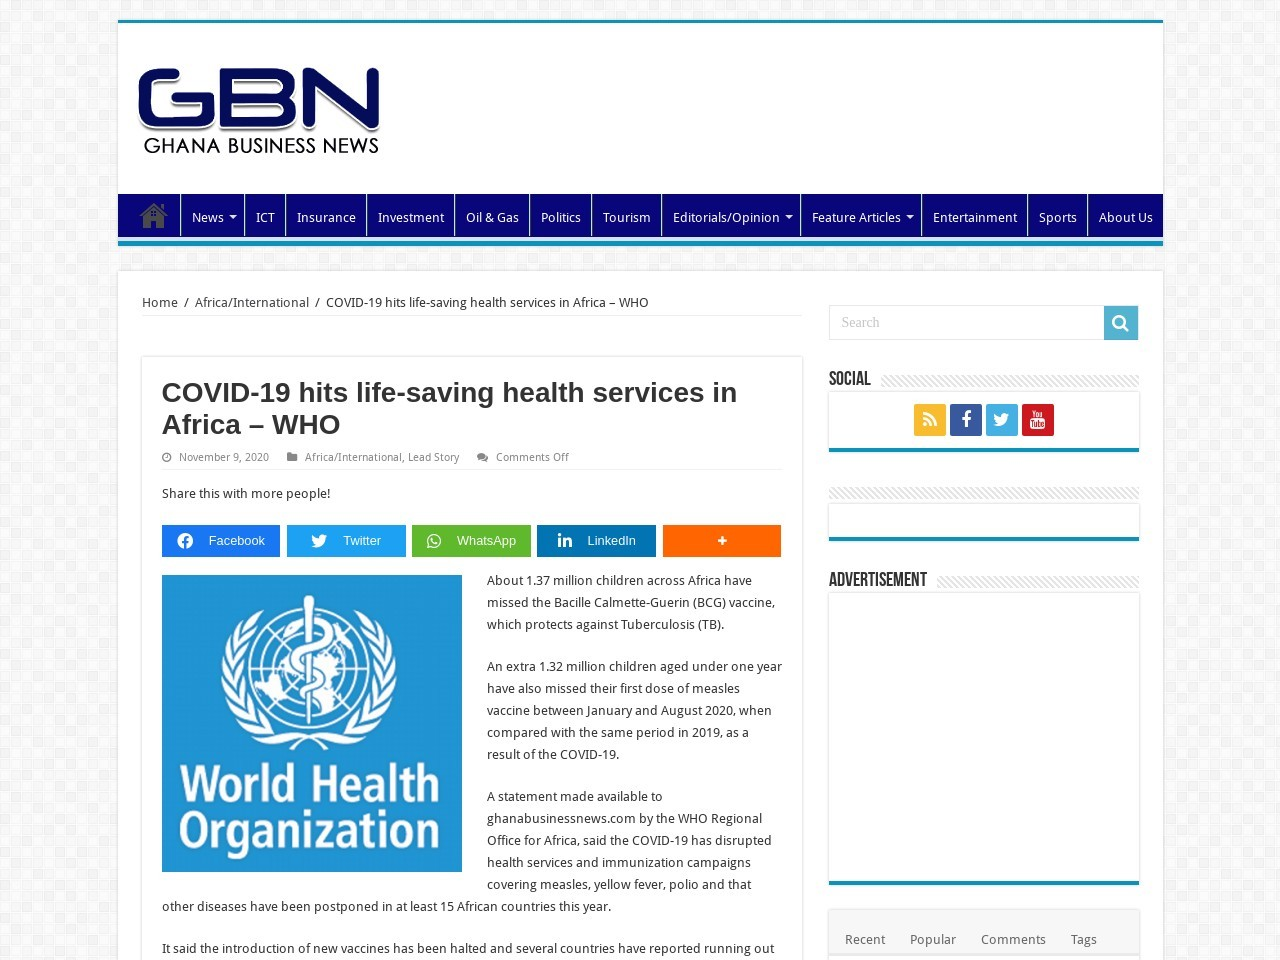 COVID-19 hits life-saving health services in Africa - WHO - Ghana Business News